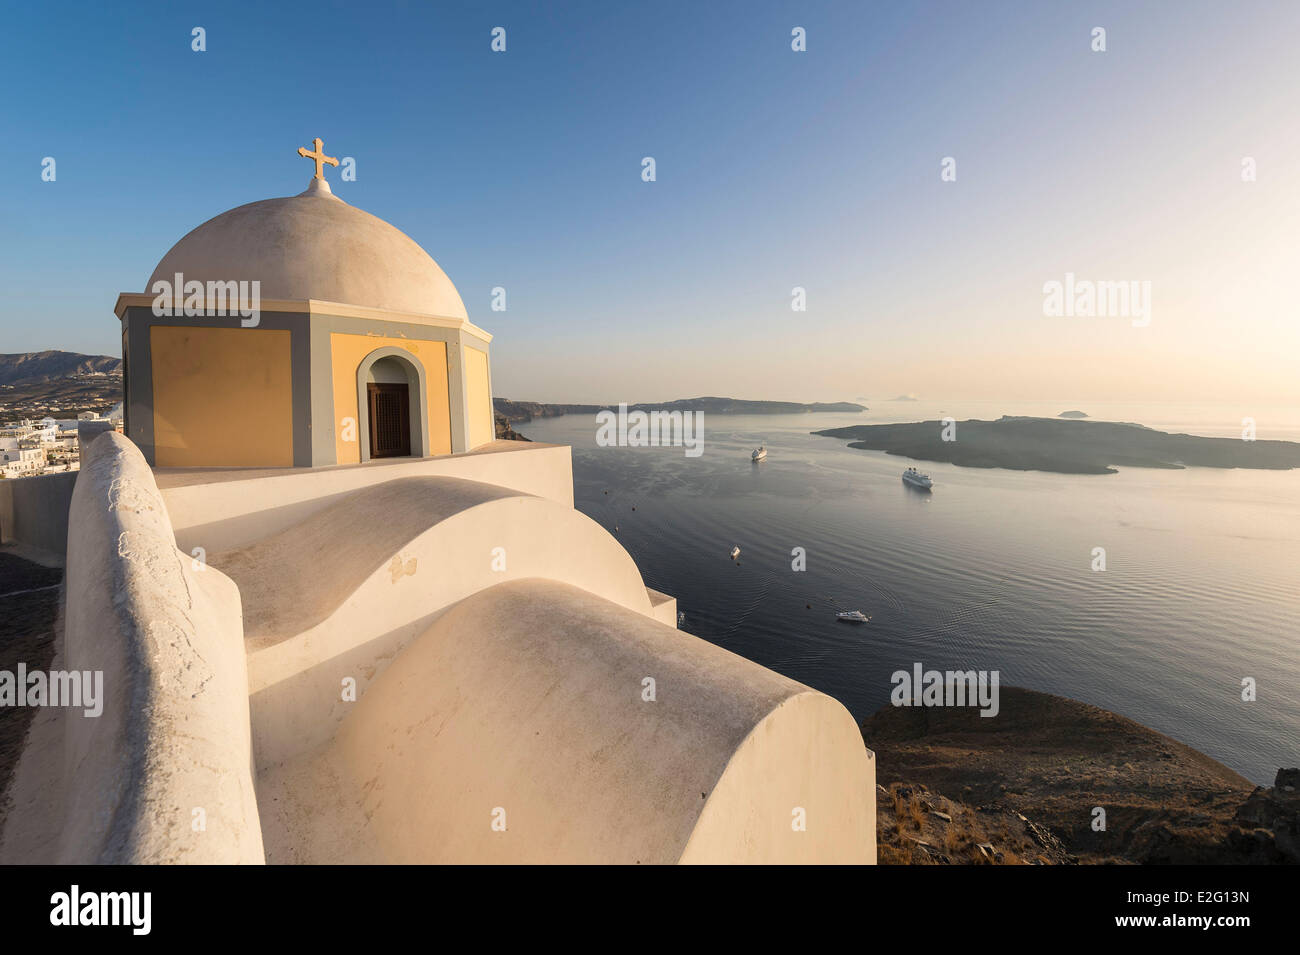 Greece Cyclades Islands Santorini Island (Thira) church in Fira - Stock Image